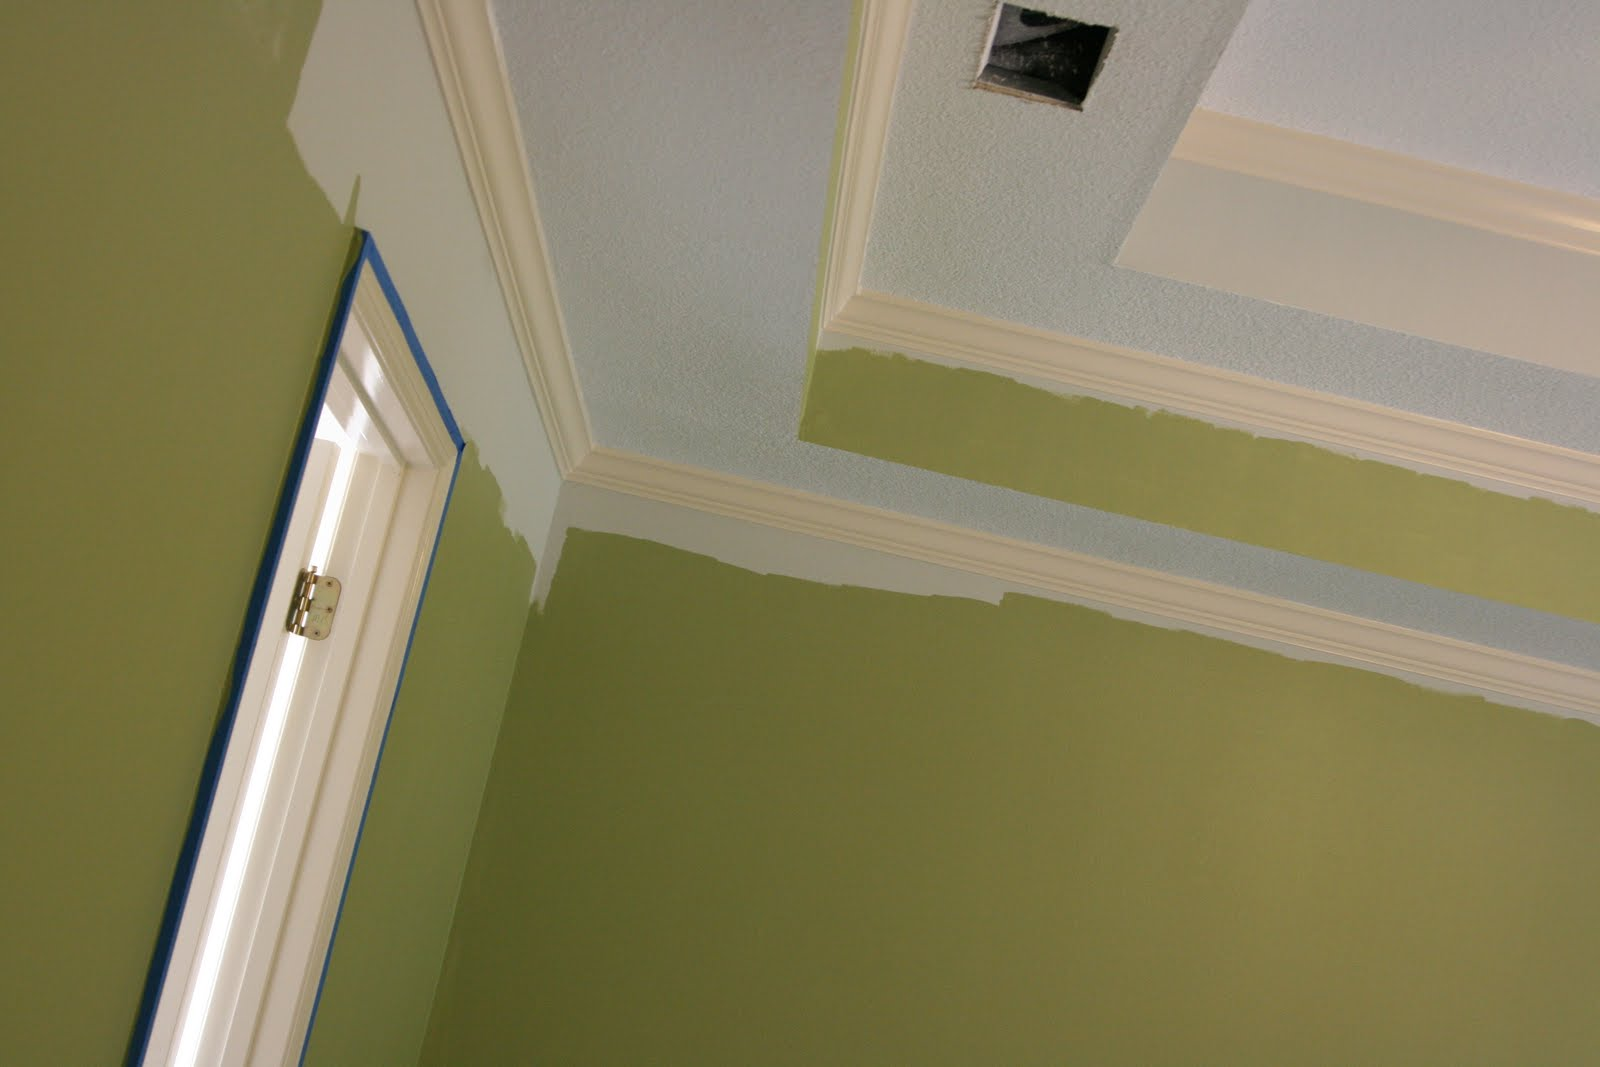 SherwinWilliams Paint Color Rye Grass